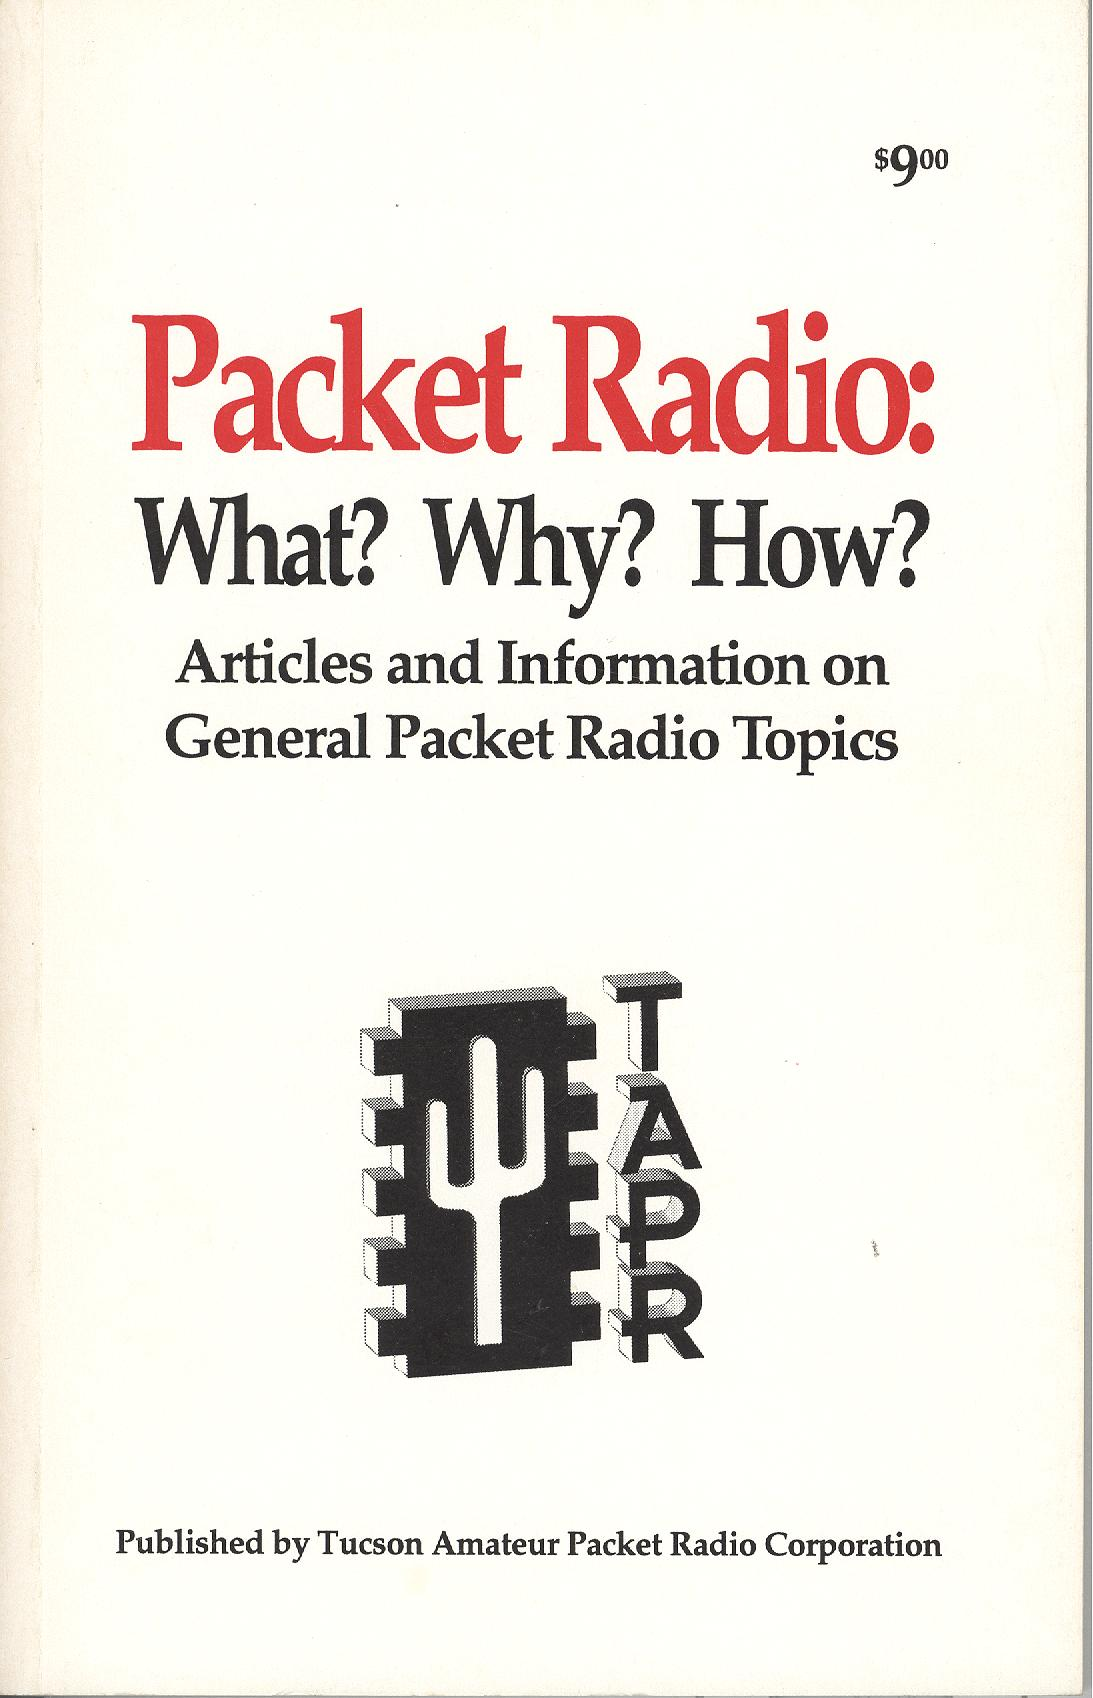 Packet Radio: What? Why? How?